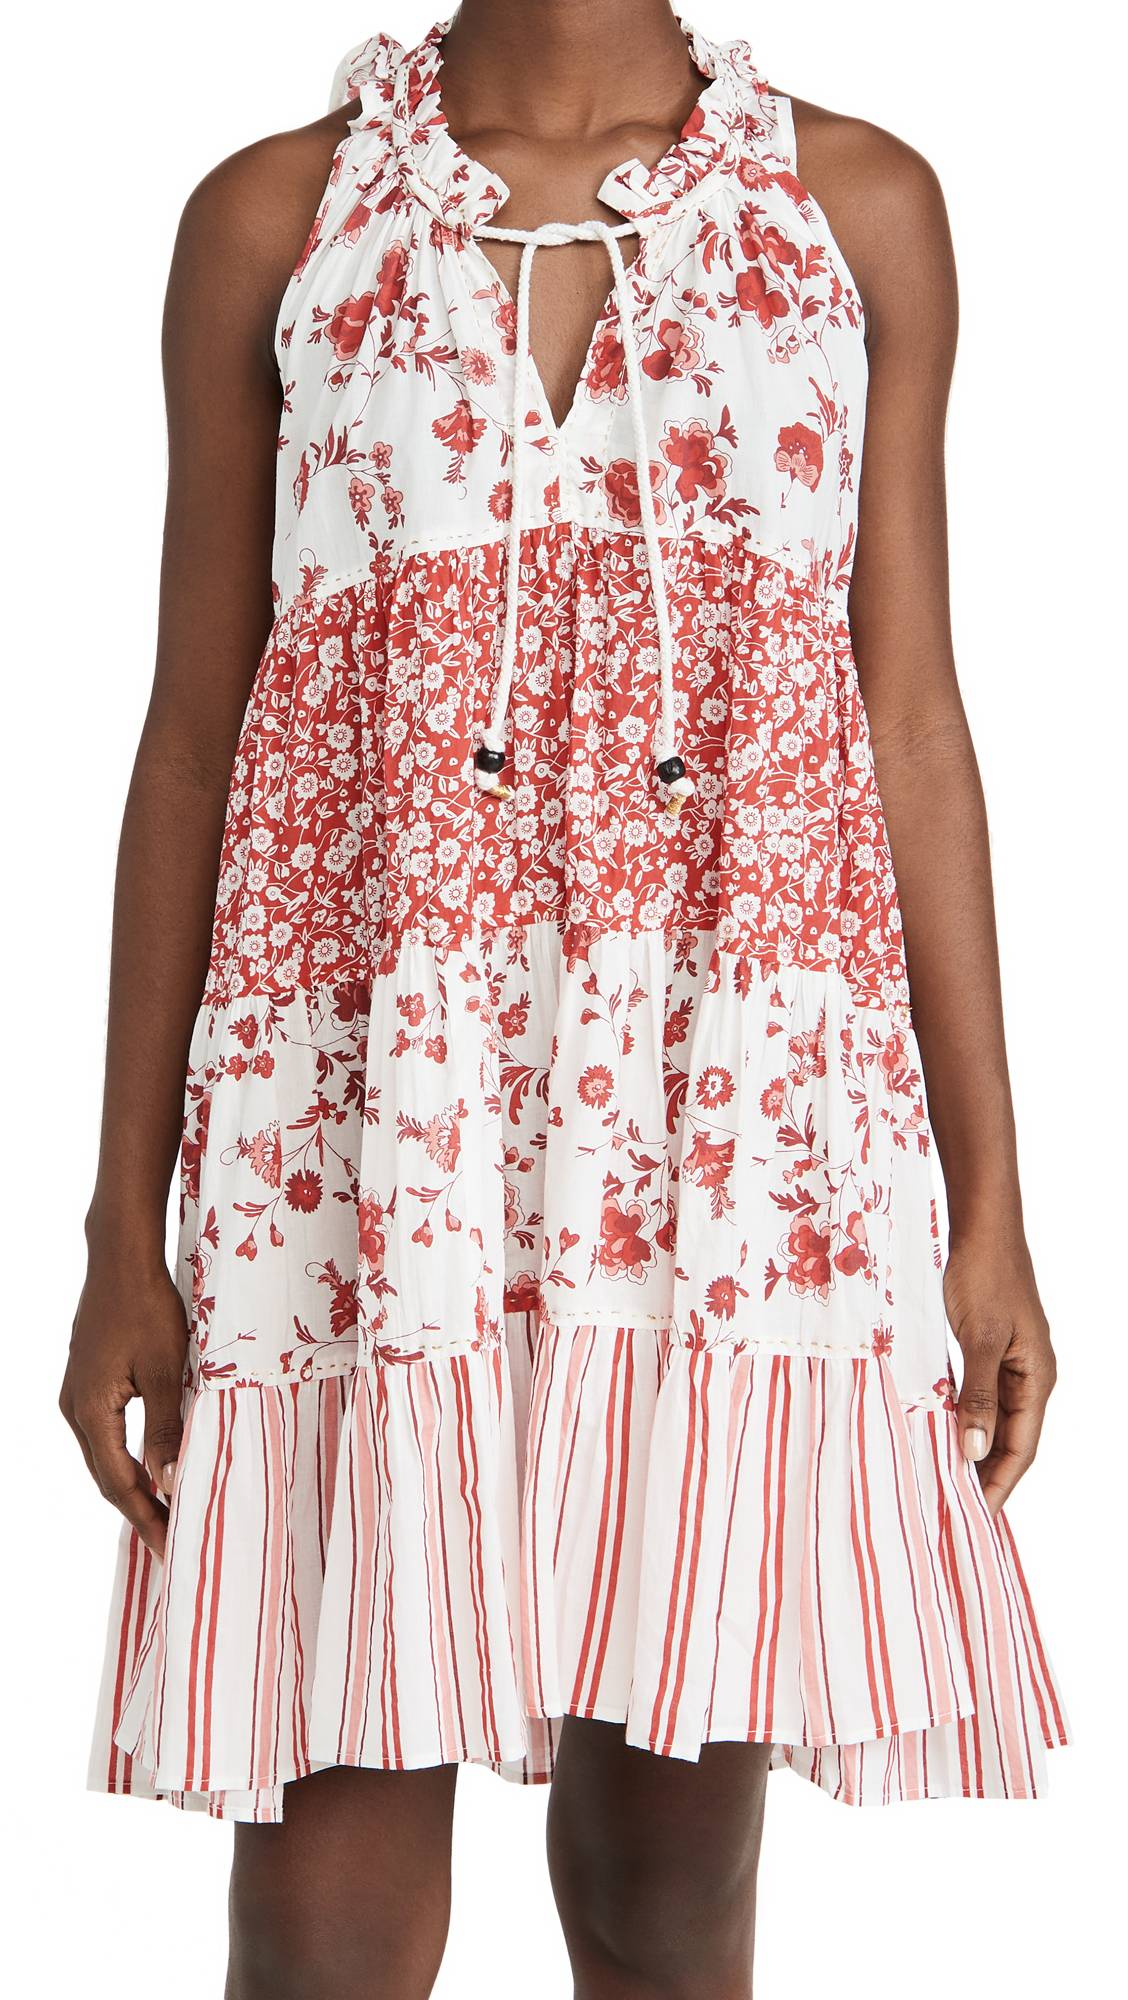 Ro's Garden Sofia Short Dress  - Provence Red - Size: Large